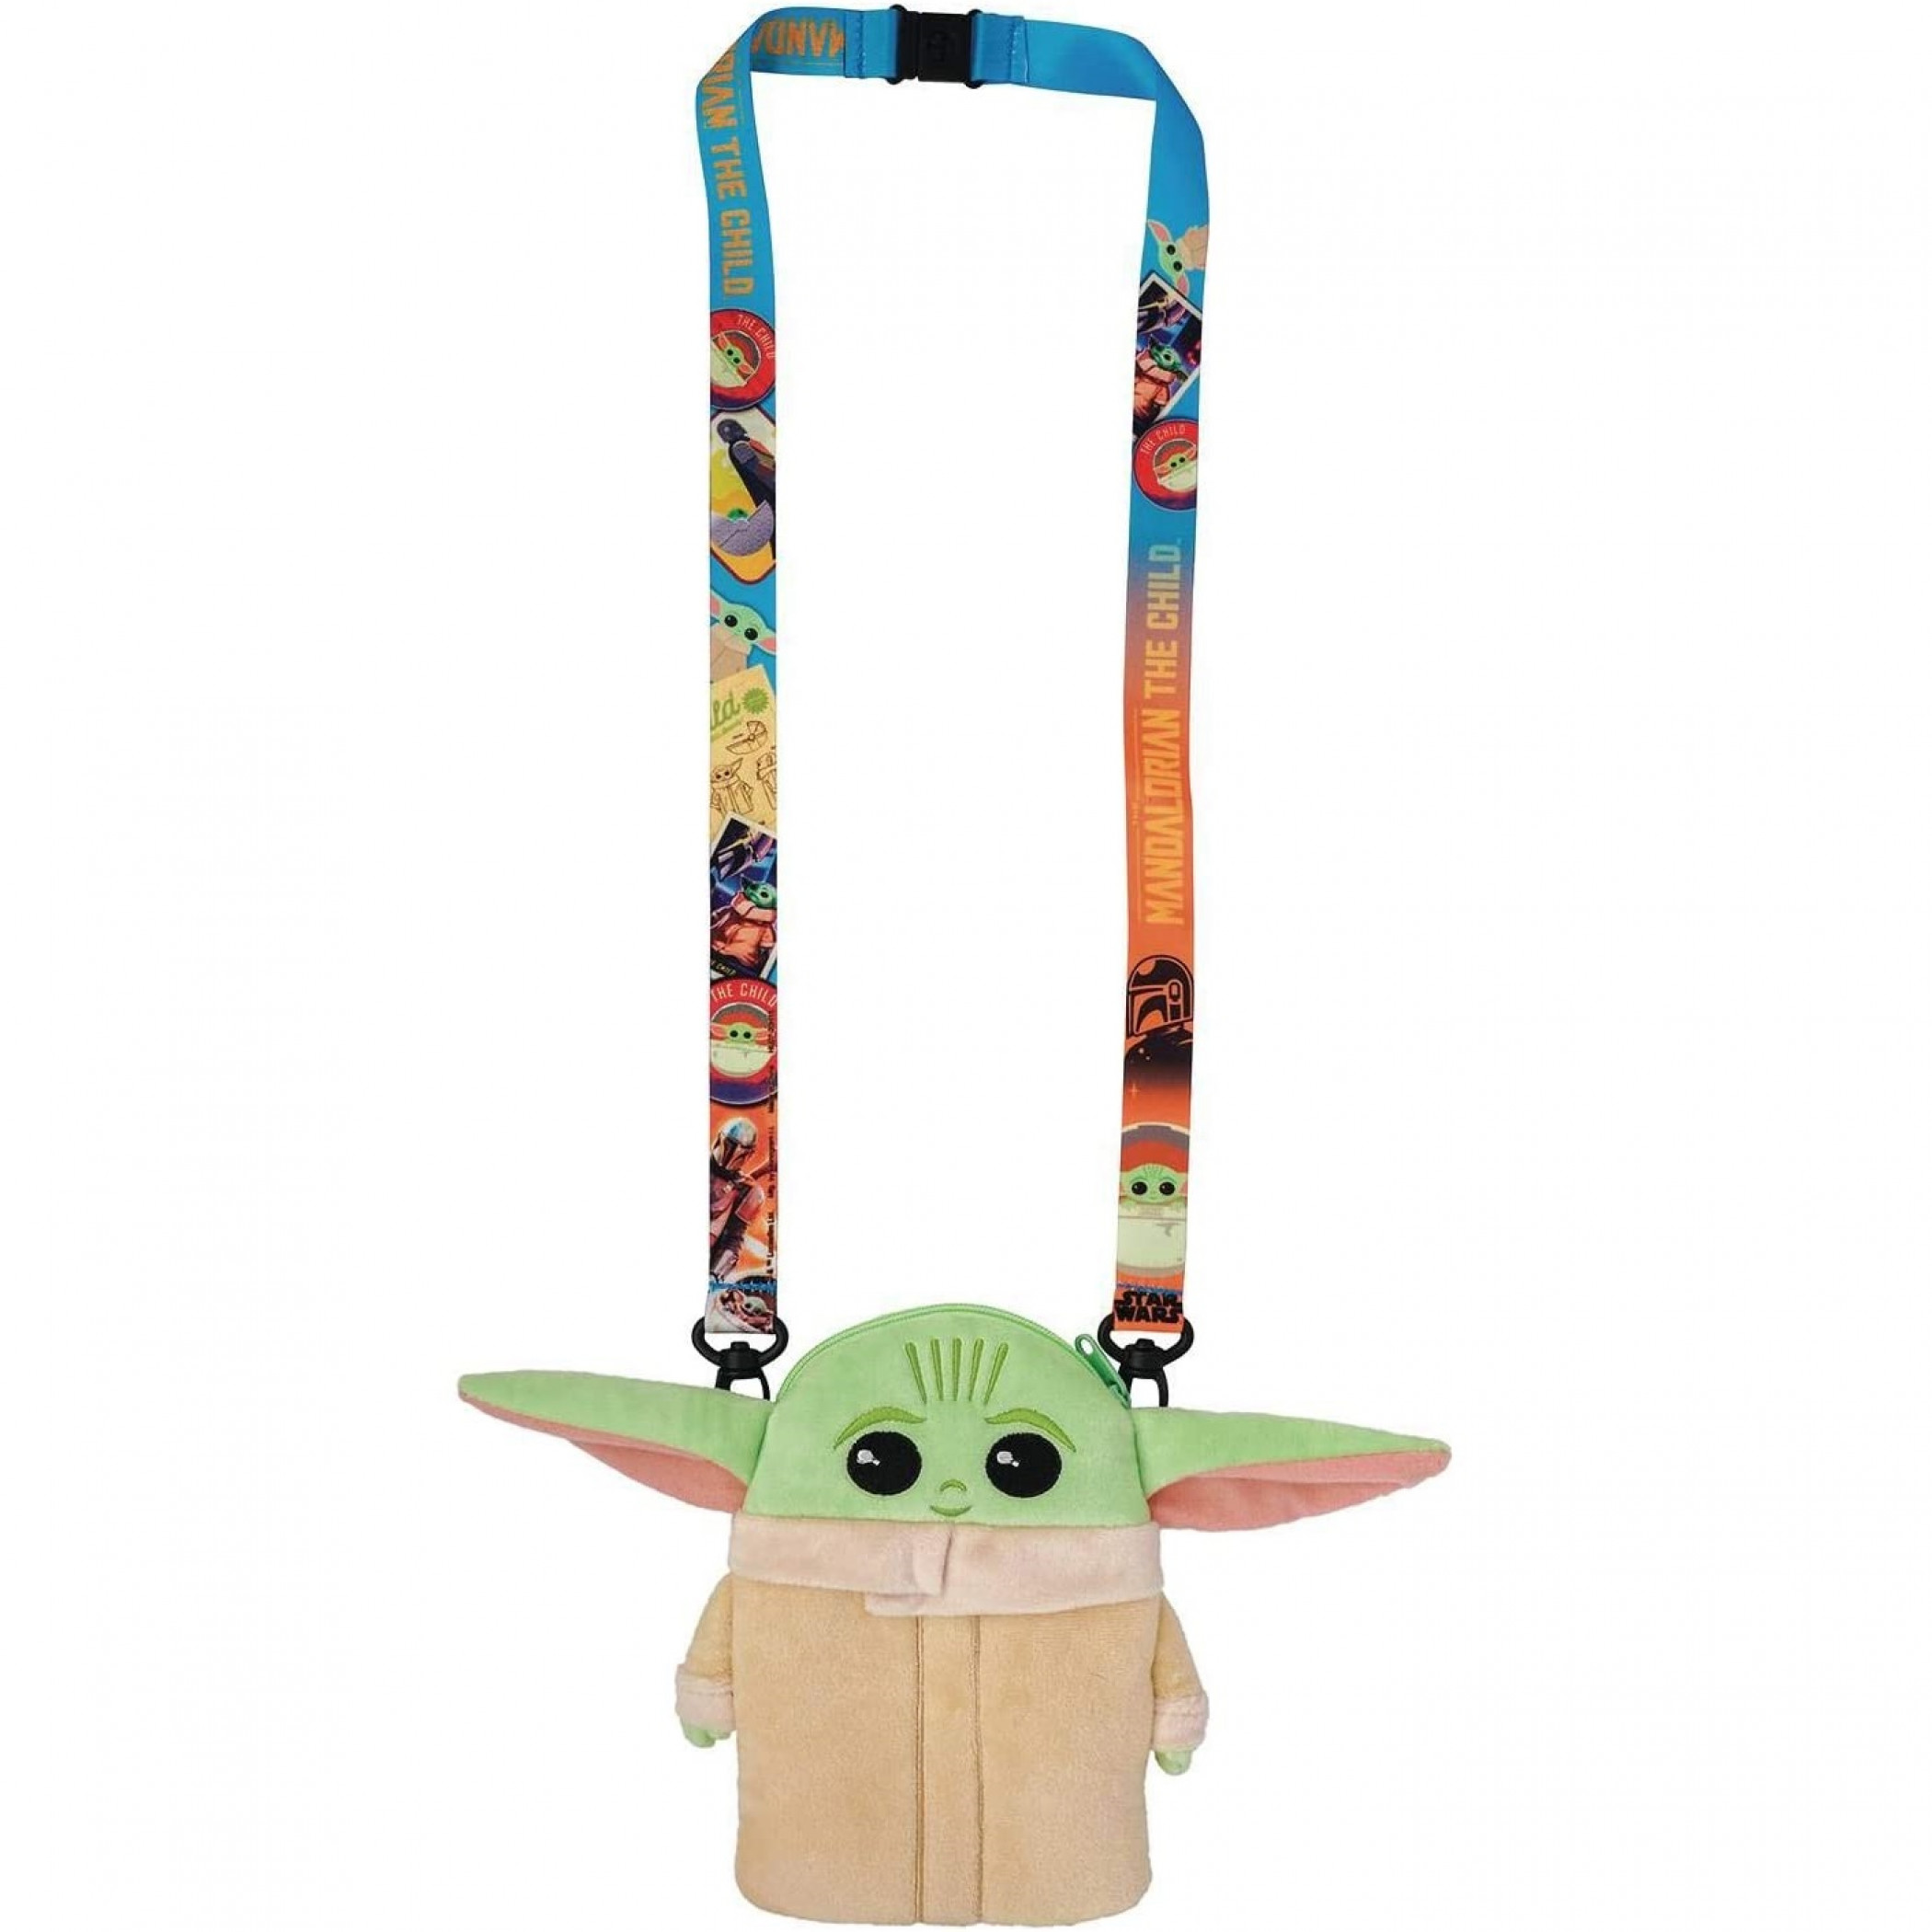 Star Wars The Child Deluxe Lanyard with Card Holder